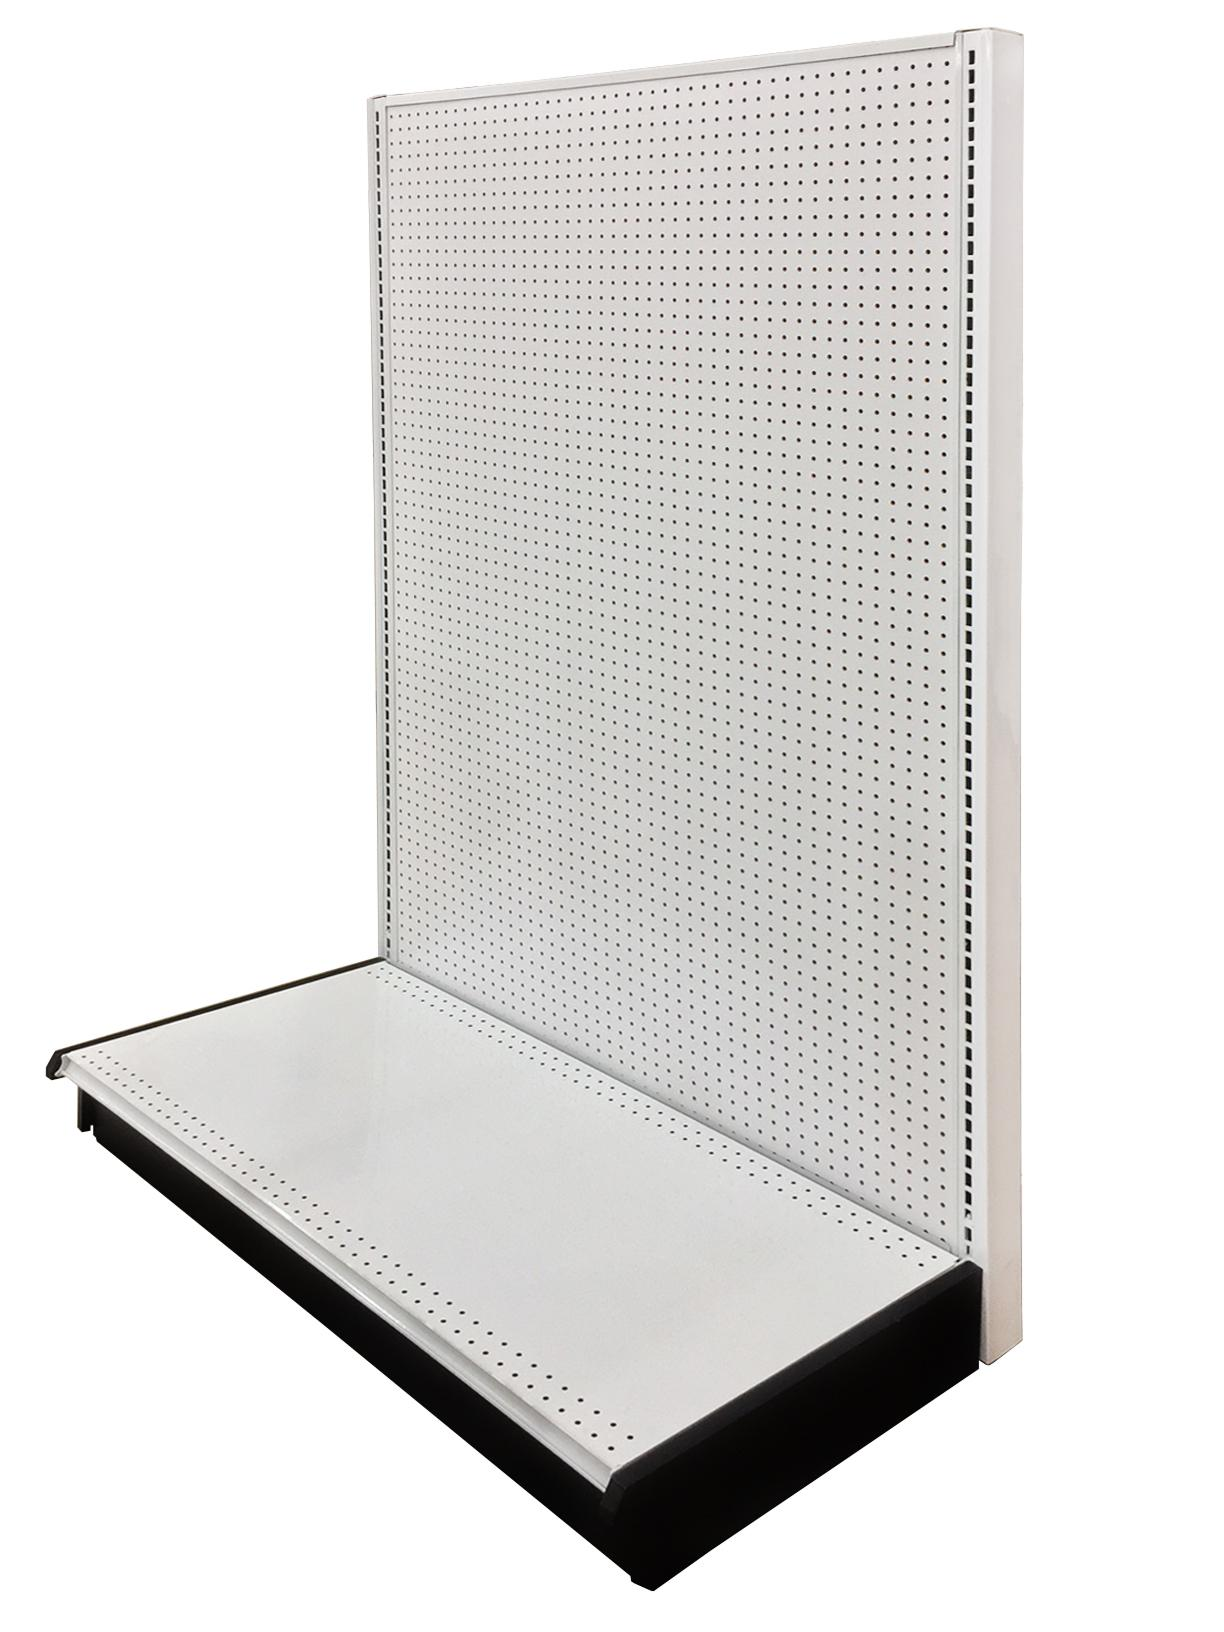 Wall Unit Addon 48 Length 84 Height 22 Base Depth Pegboard Backing White